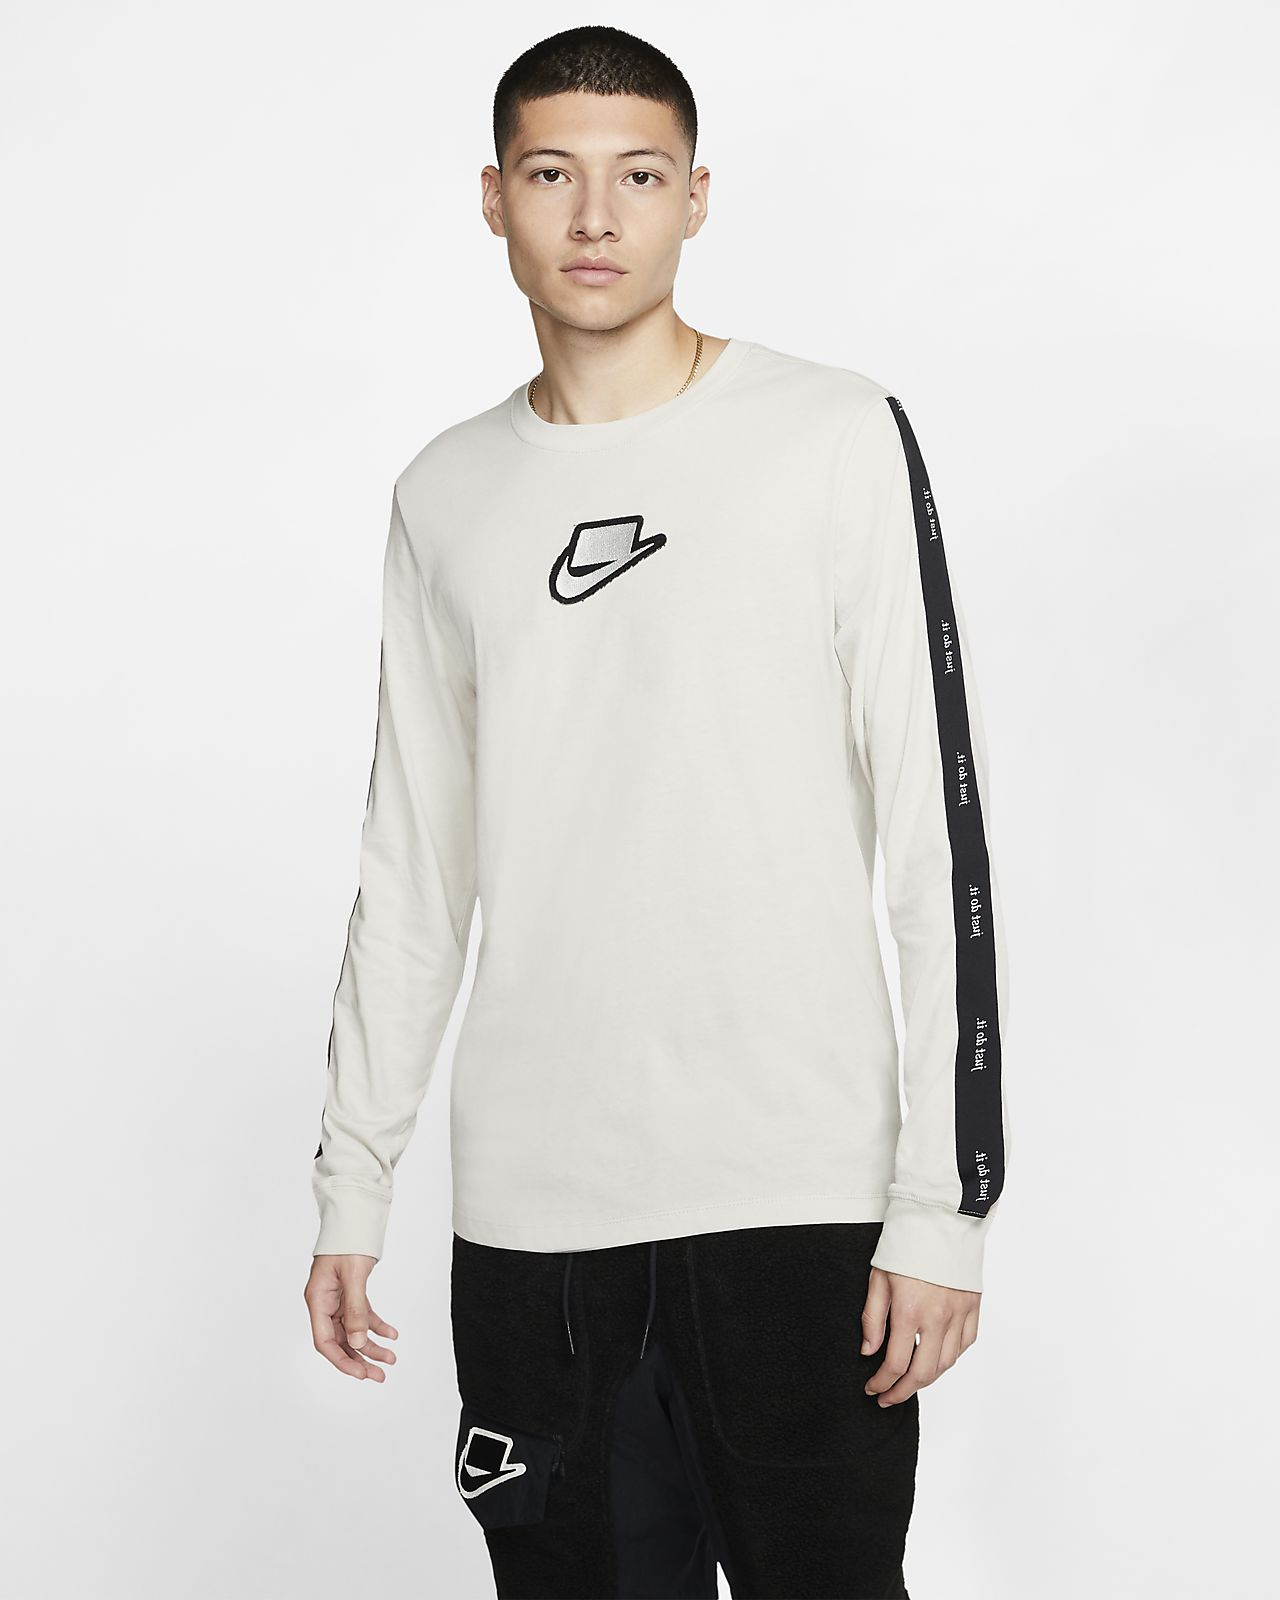 usa cheap sale best place speical offer Nike Sportswear NSW Men's Long-Sleeve T-Shirt